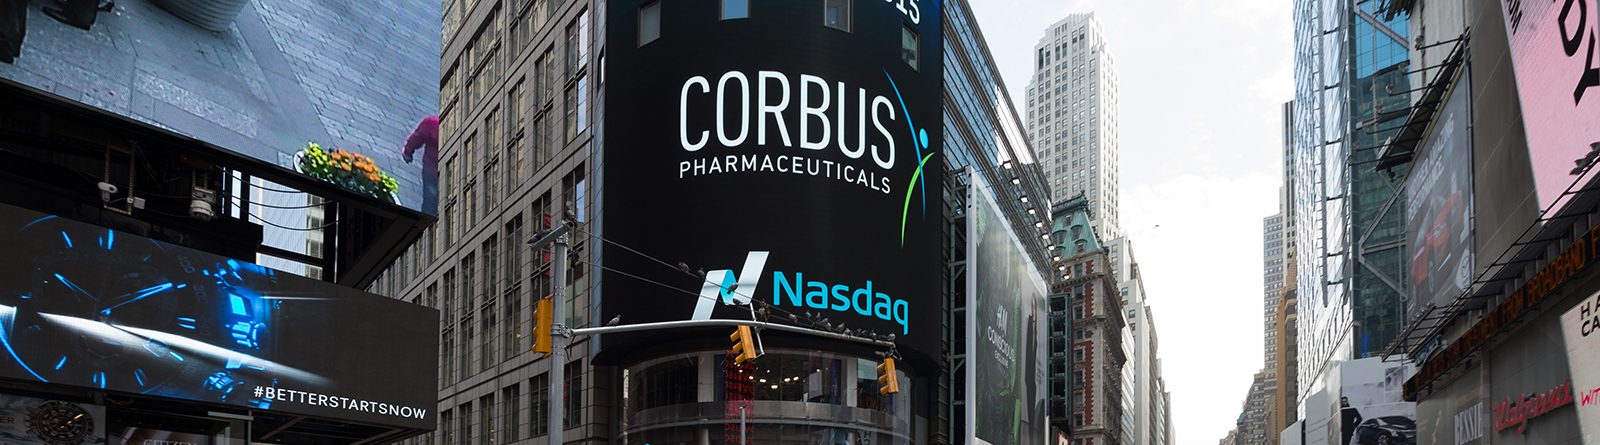 Corbus Pharmaceuticals Reports Third Quarter 2018 Financial Results and Provides Business Update Banner